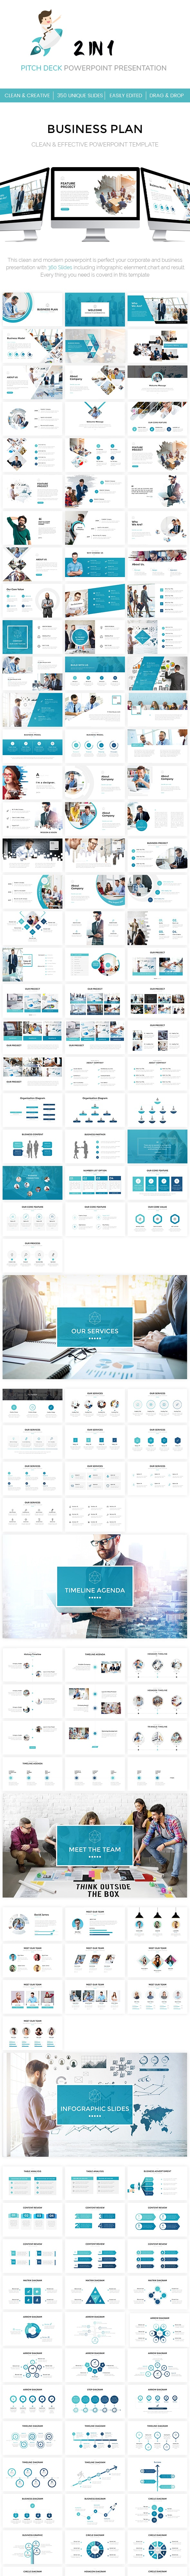 2 in 1 Clean Pitch Deck Powerpoint Template - Business PowerPoint Templates